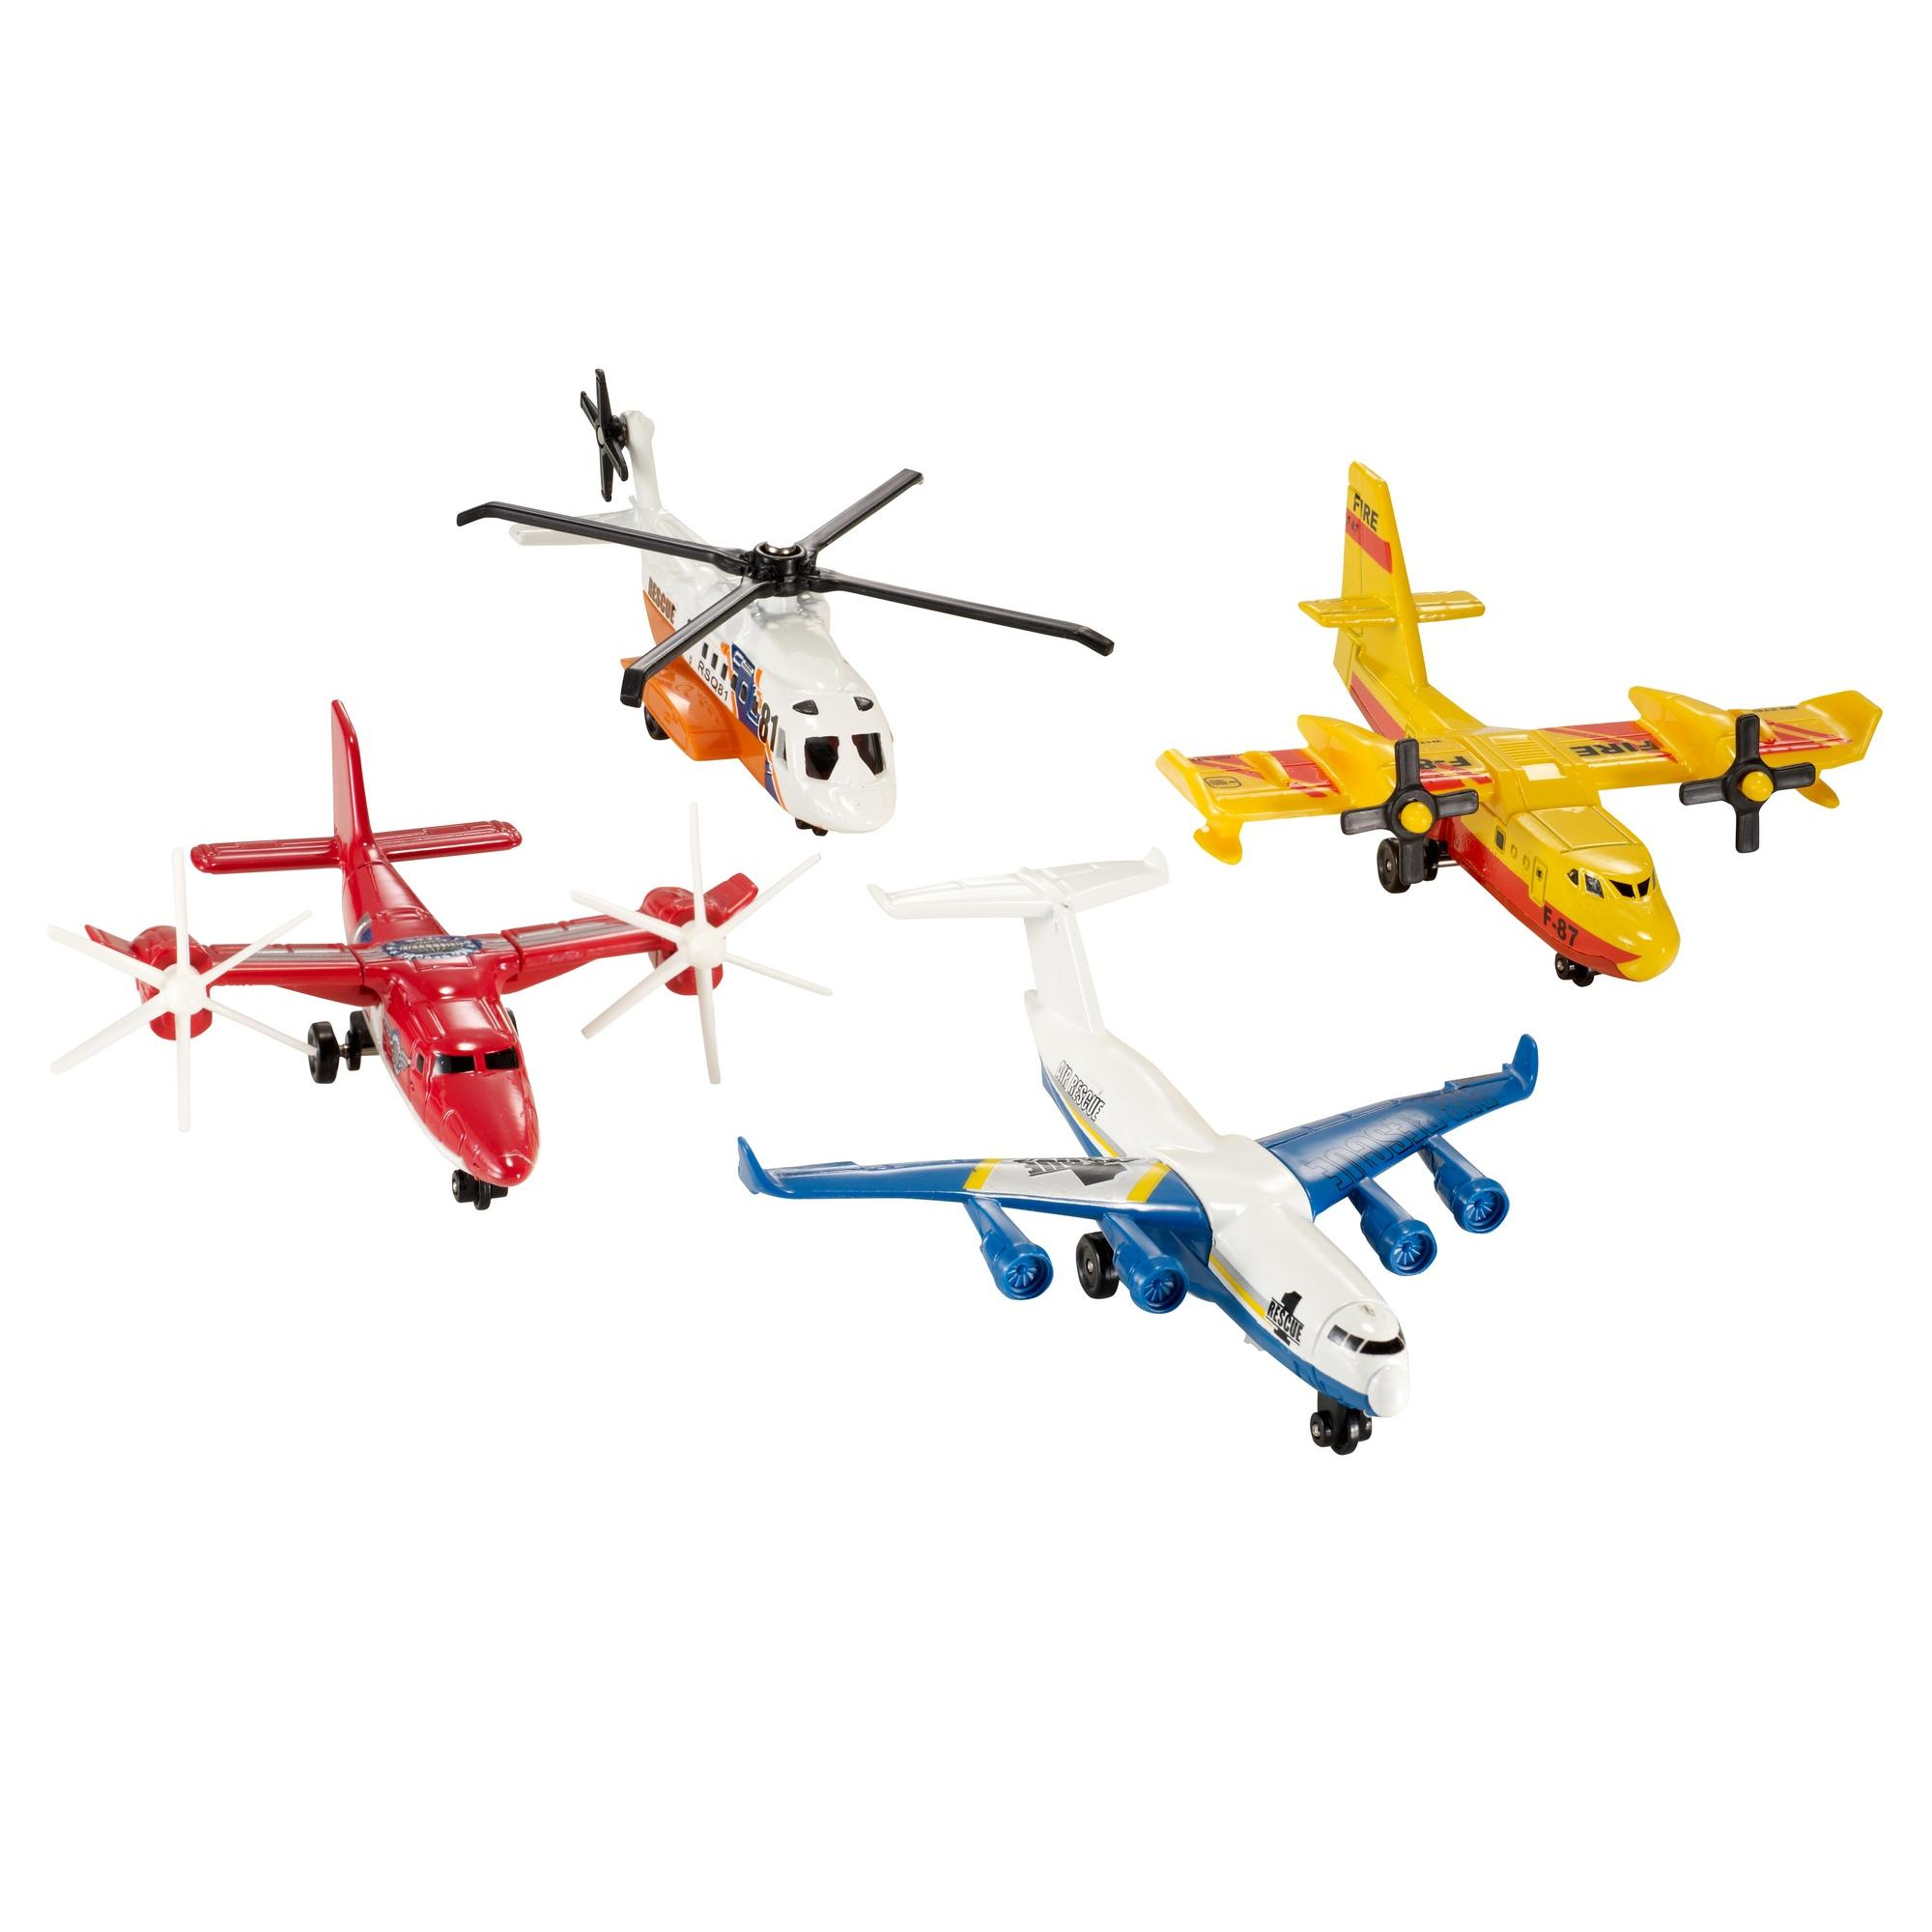 Matchbox Sky Busters 4 Pack (Styles May Vary)